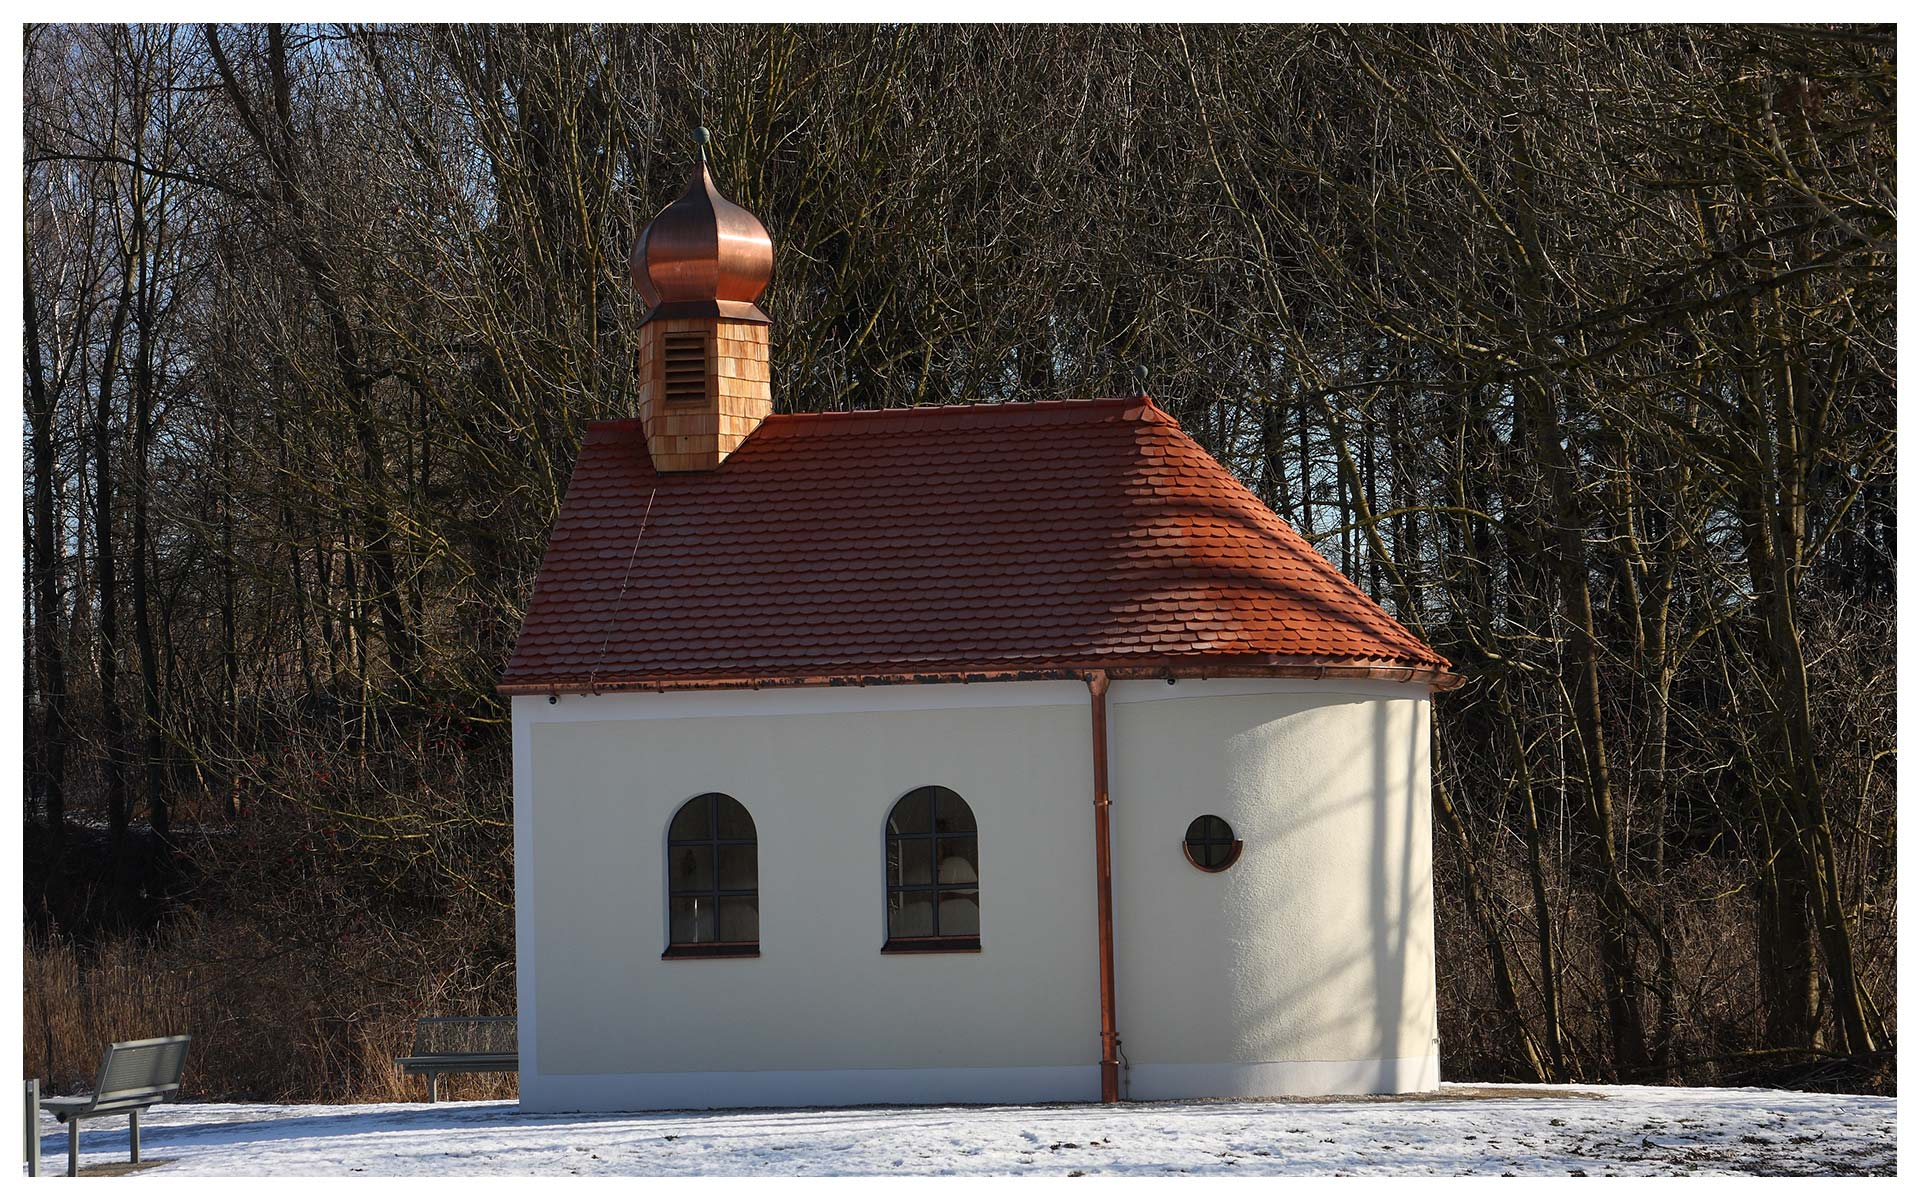 Kolomanskapelle in Ismaning